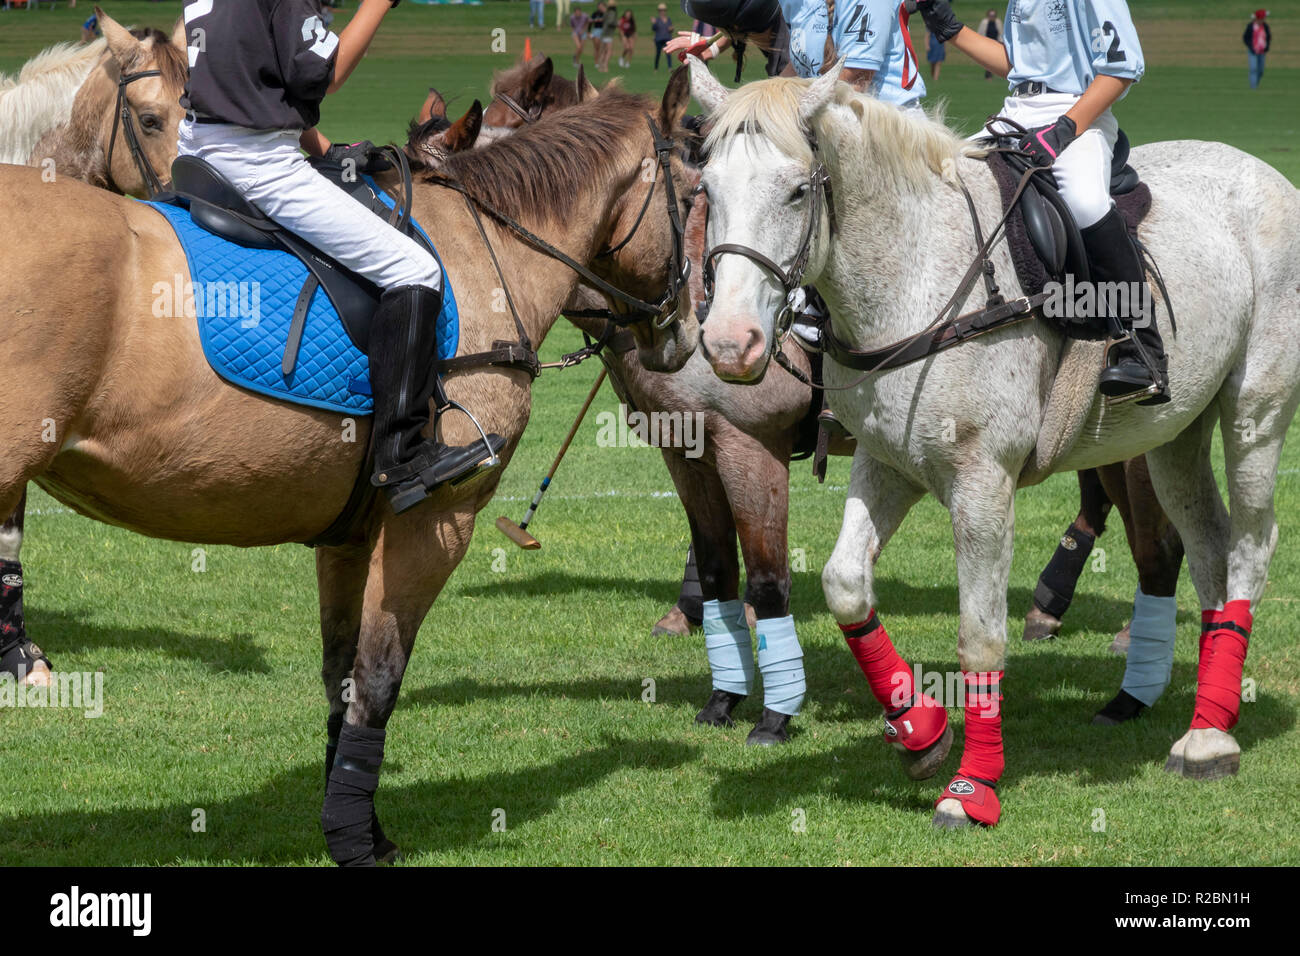 Waikii, Hawaii - Polo ponies before a match at the Mauna Kea Polo Club. The club plays Sunday afternoons on the slopes of the dormant volcano, Mauna K - Stock Image